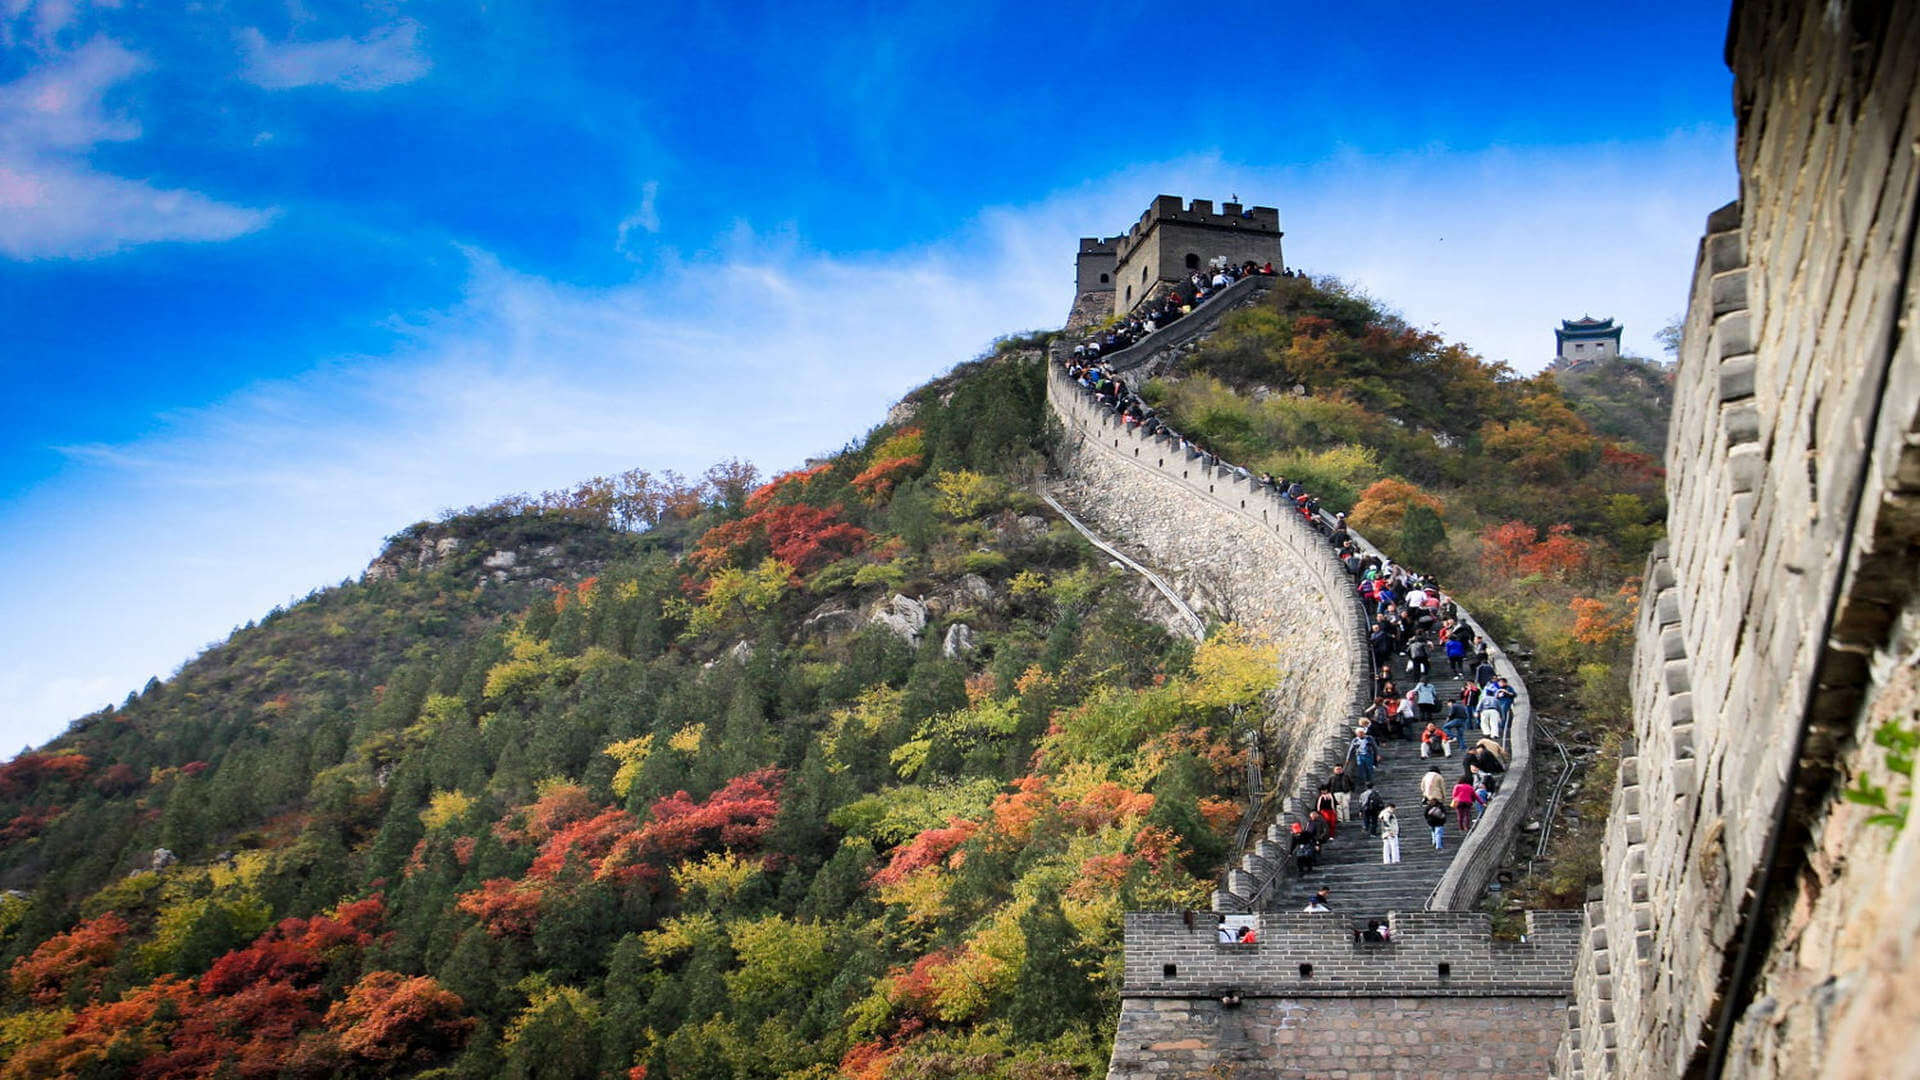 Badaling Great Wall & Ming Tombs Day Tour